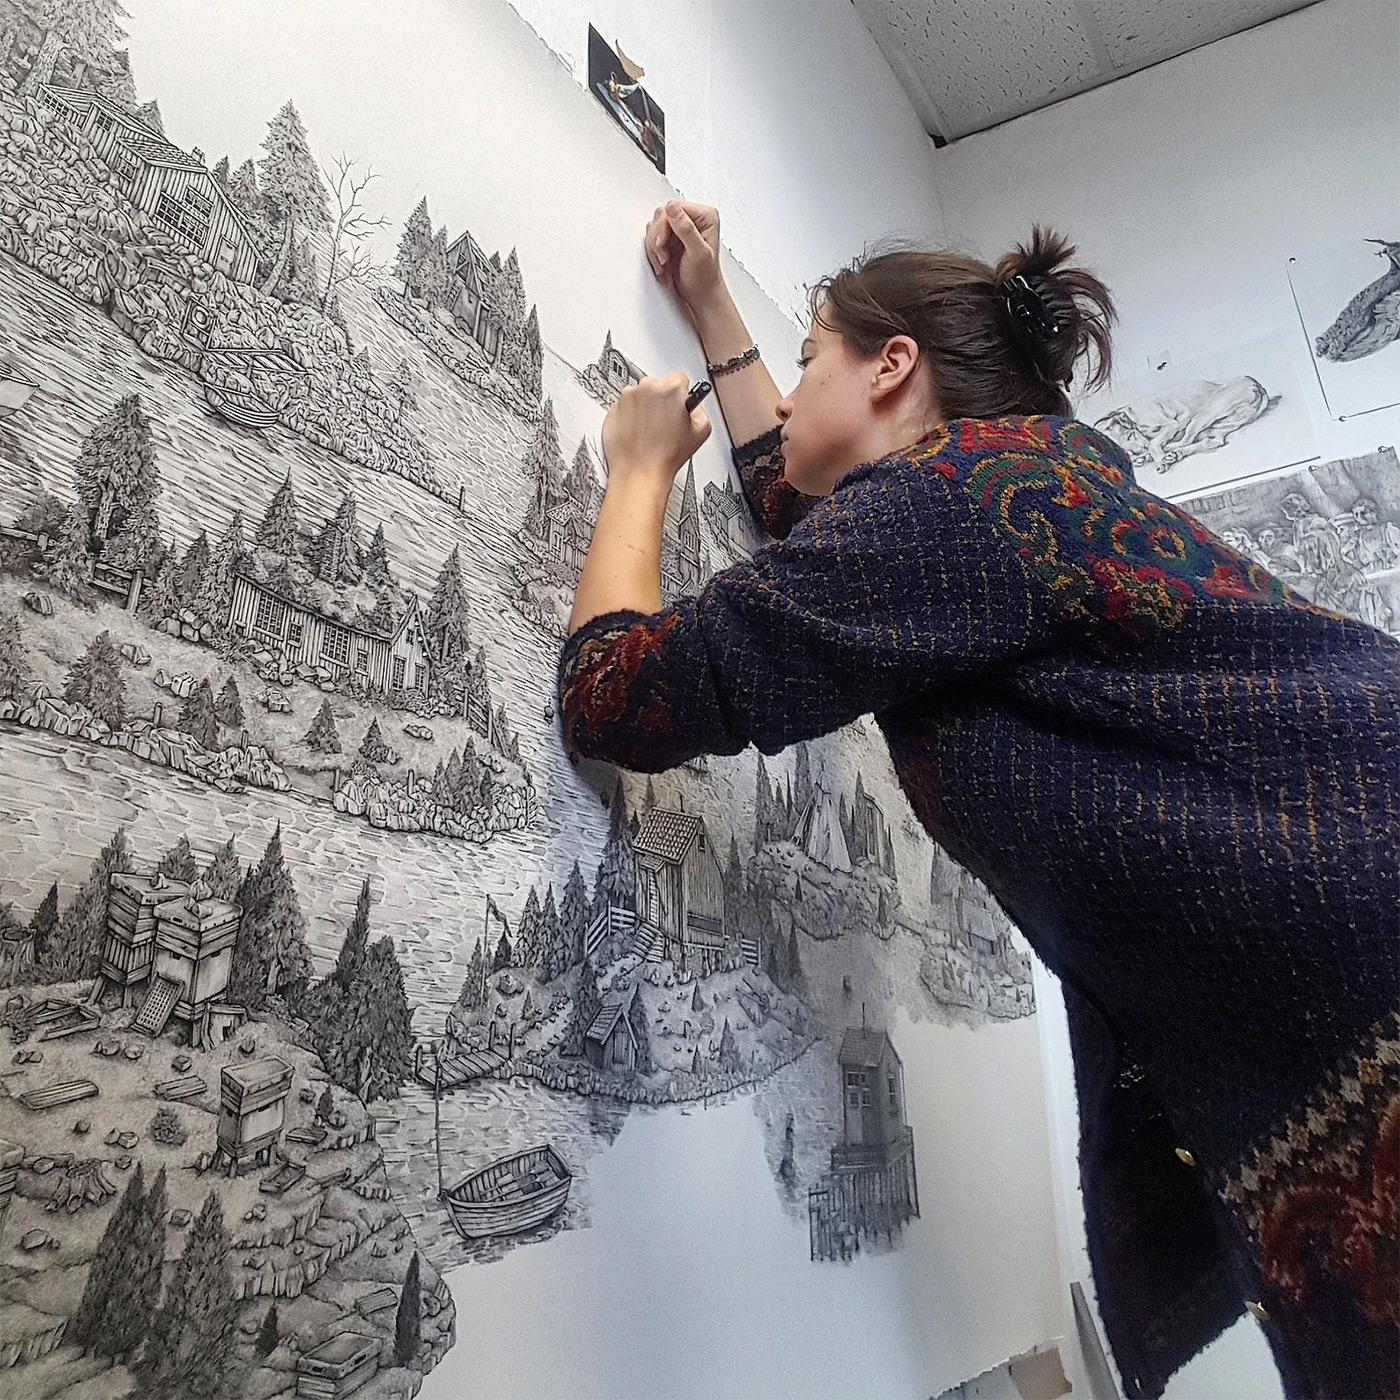 Monumentally Detailed Pen Drawings That Combine Real and Imagined Landscapes by Olivia Kemp